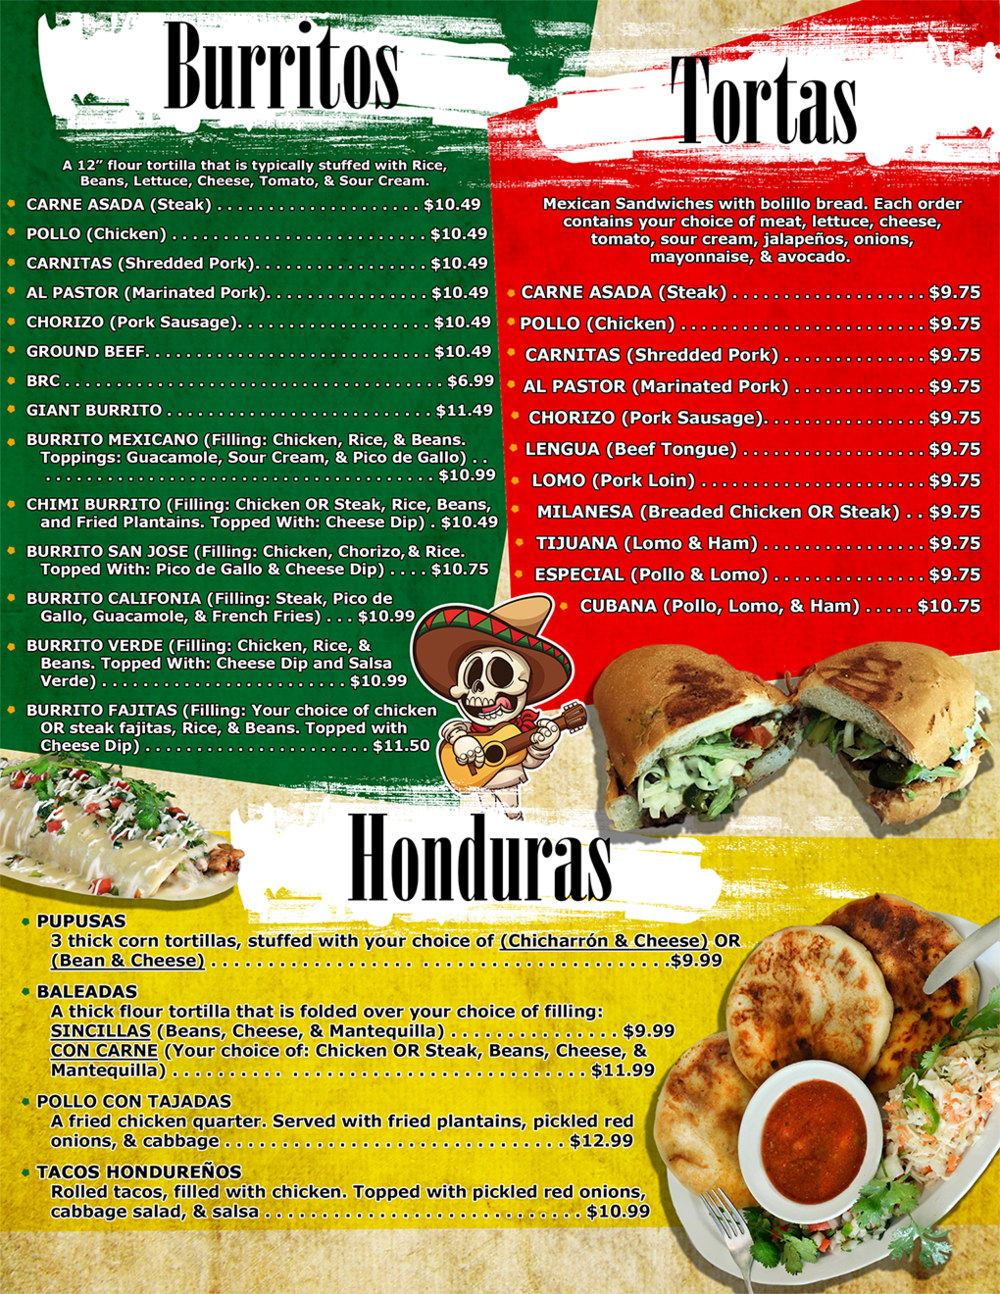 Burritos, Tortas, and Honduras